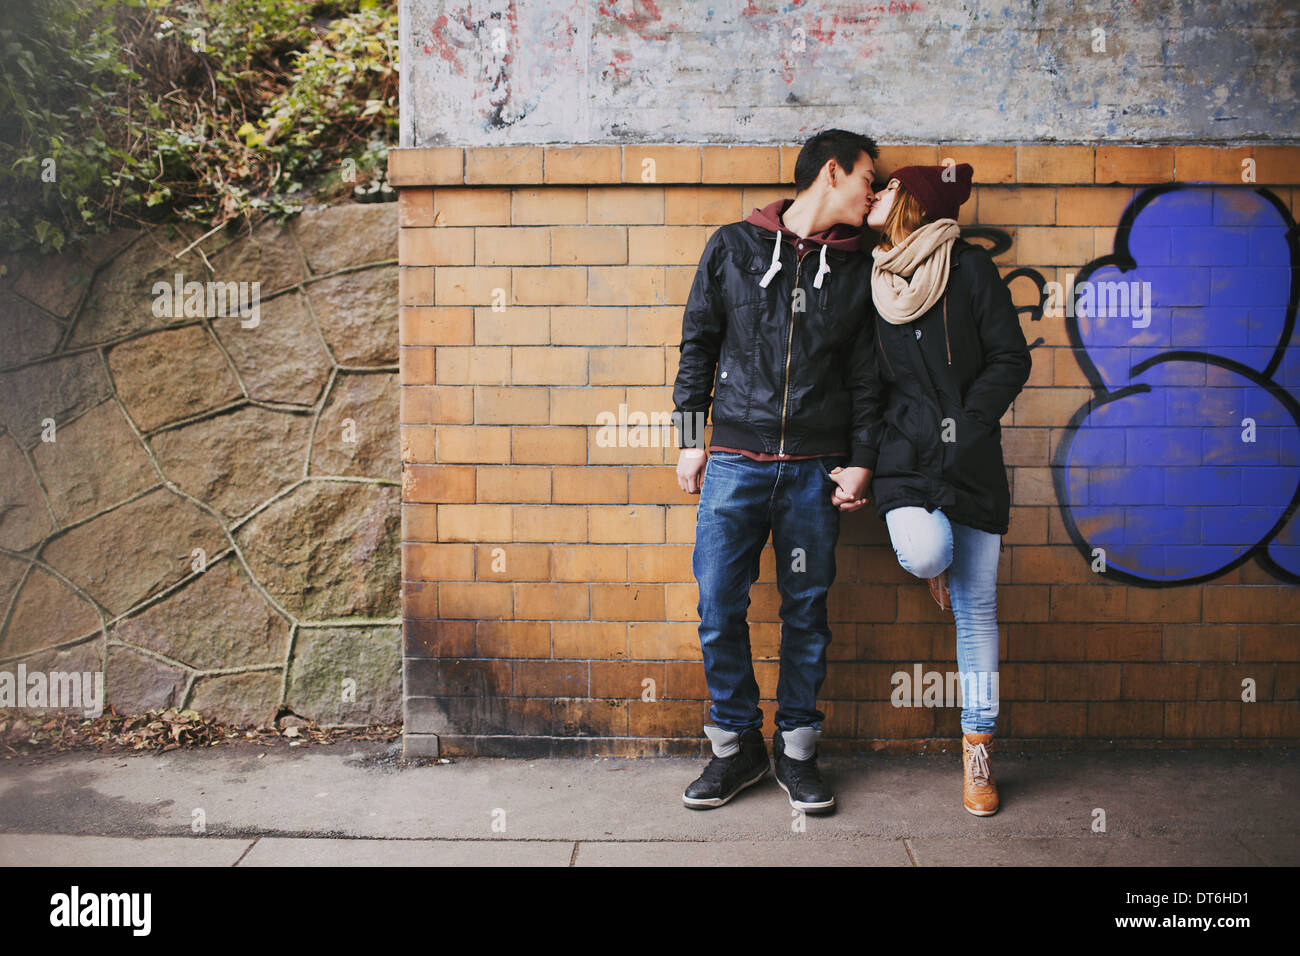 Affectionate teenage couple kissing outdoors against a wall on street. Mixed race couple in love. - Stock Image